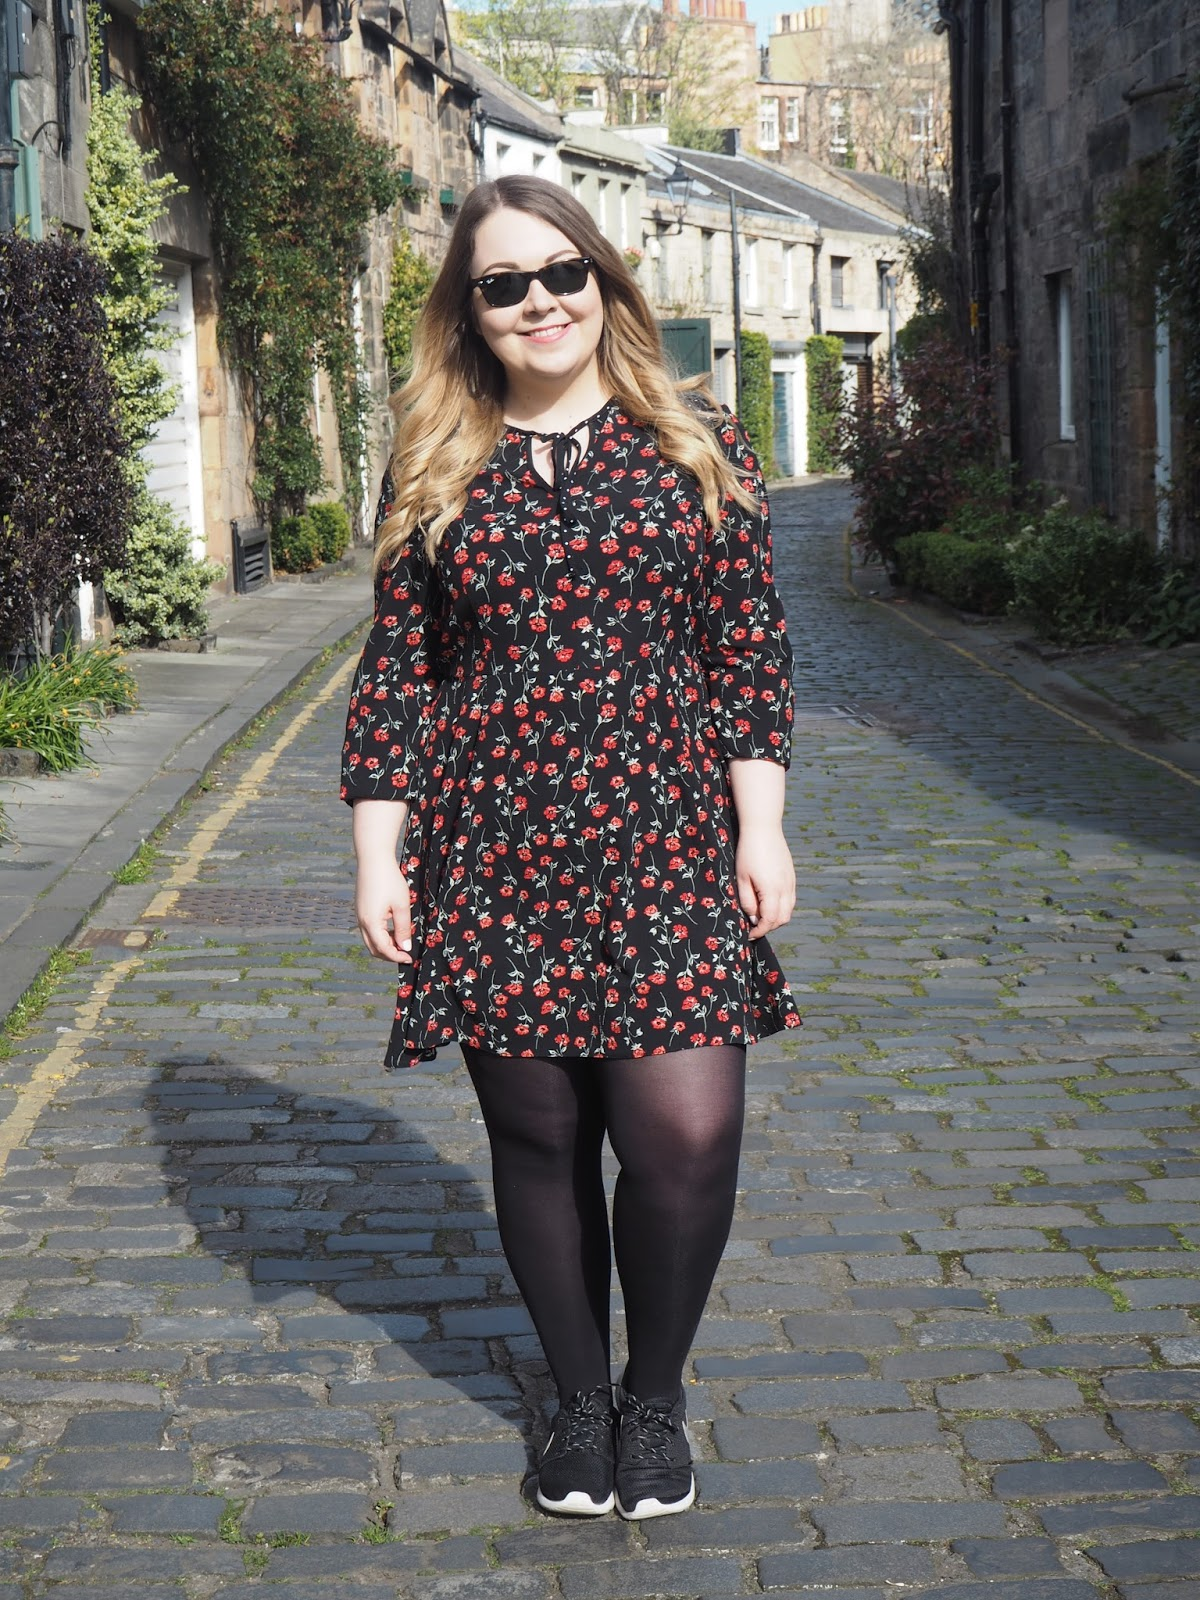 My Current Go-To Spring Outfit: The Floral Miss Selfridge Tea Dress